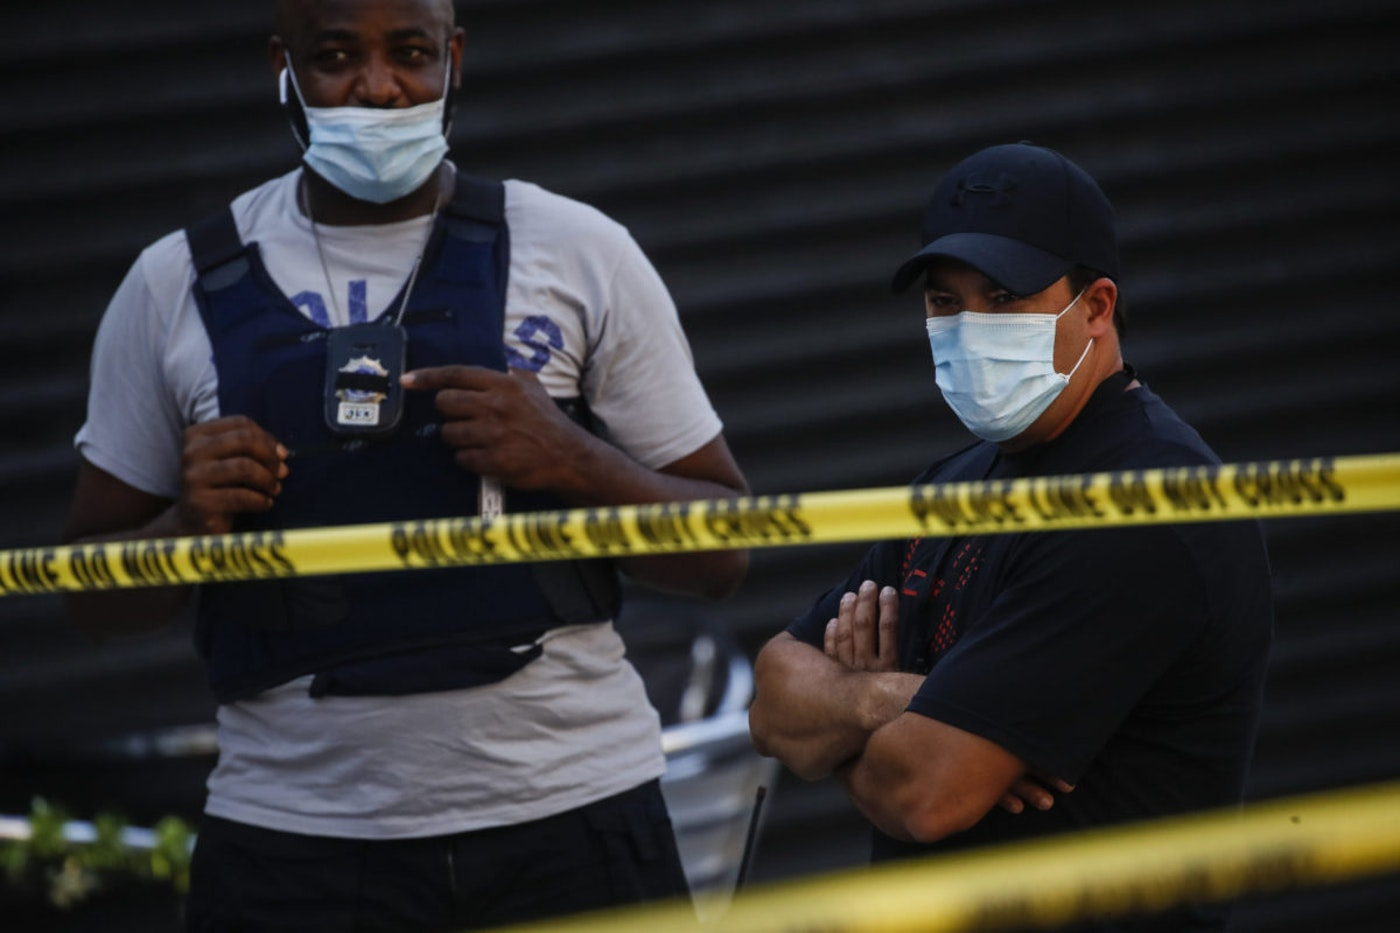 Police officers respond to a crime scene where a 23-year-old man was discovered with gunshot wounds to his legs and torso before being transported to a hospital where he died from his injuries in Brooklyn, New York. (AP Photo/John Minchillo)